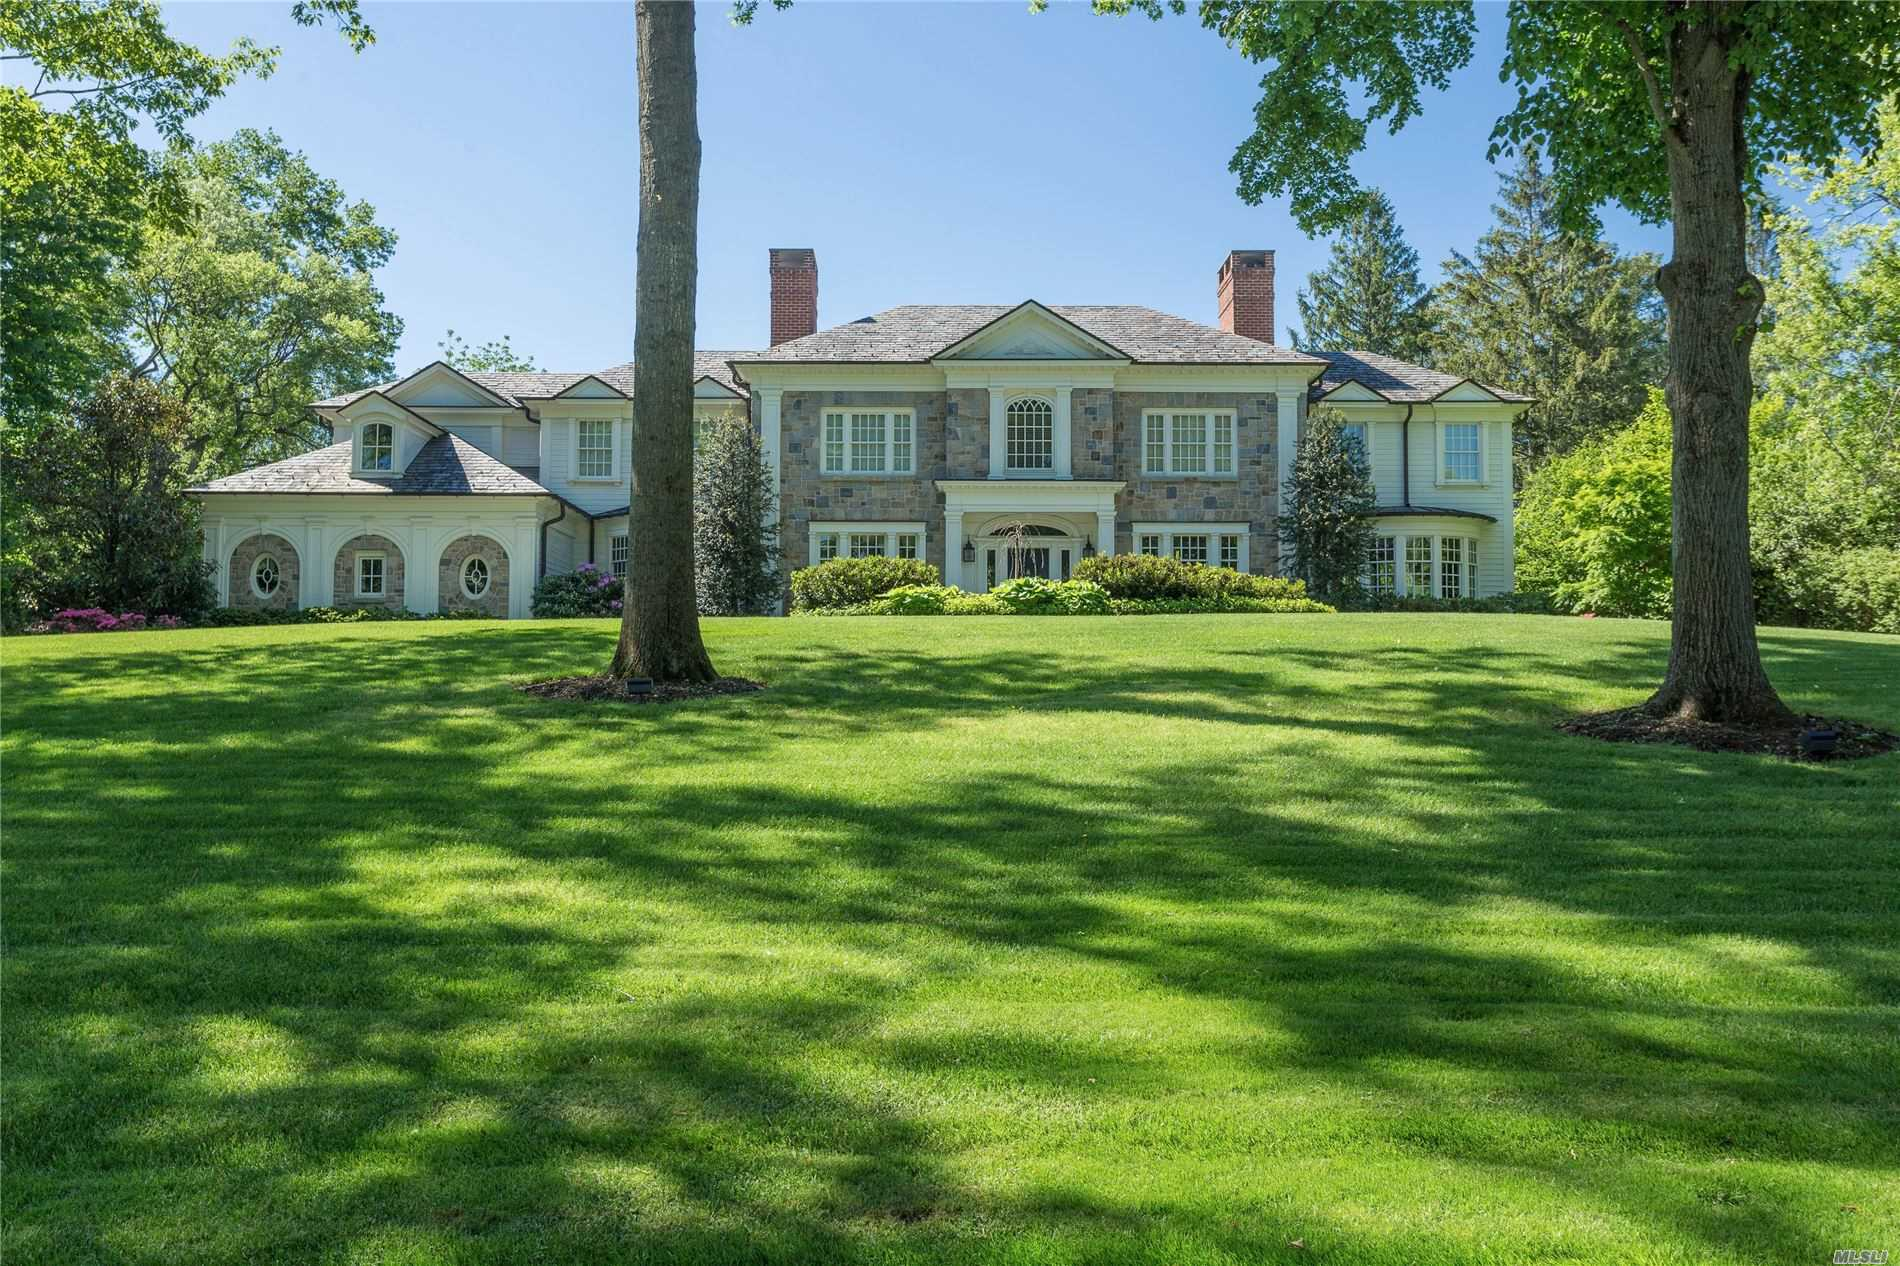 One Of The Timeless & Elegant Properties Designed By John Kean Of Kean Development Is This Grand 5 Bedroom Stone Masterpiece On Over An Acre Of Beautiful Park Like Property & Lush Gardens. Offering Over 5700 St Ft Of Luxury Living With Classic & Stunning Architectural Elements, Intricate Mill Work & The Finest Bespoke Cabinetry & Finishes Through Out Each Of The Grand Entertaining Rooms Of This State Of The Art Home Make This A Truly Rare Opportunity For The Discerning Buyer.